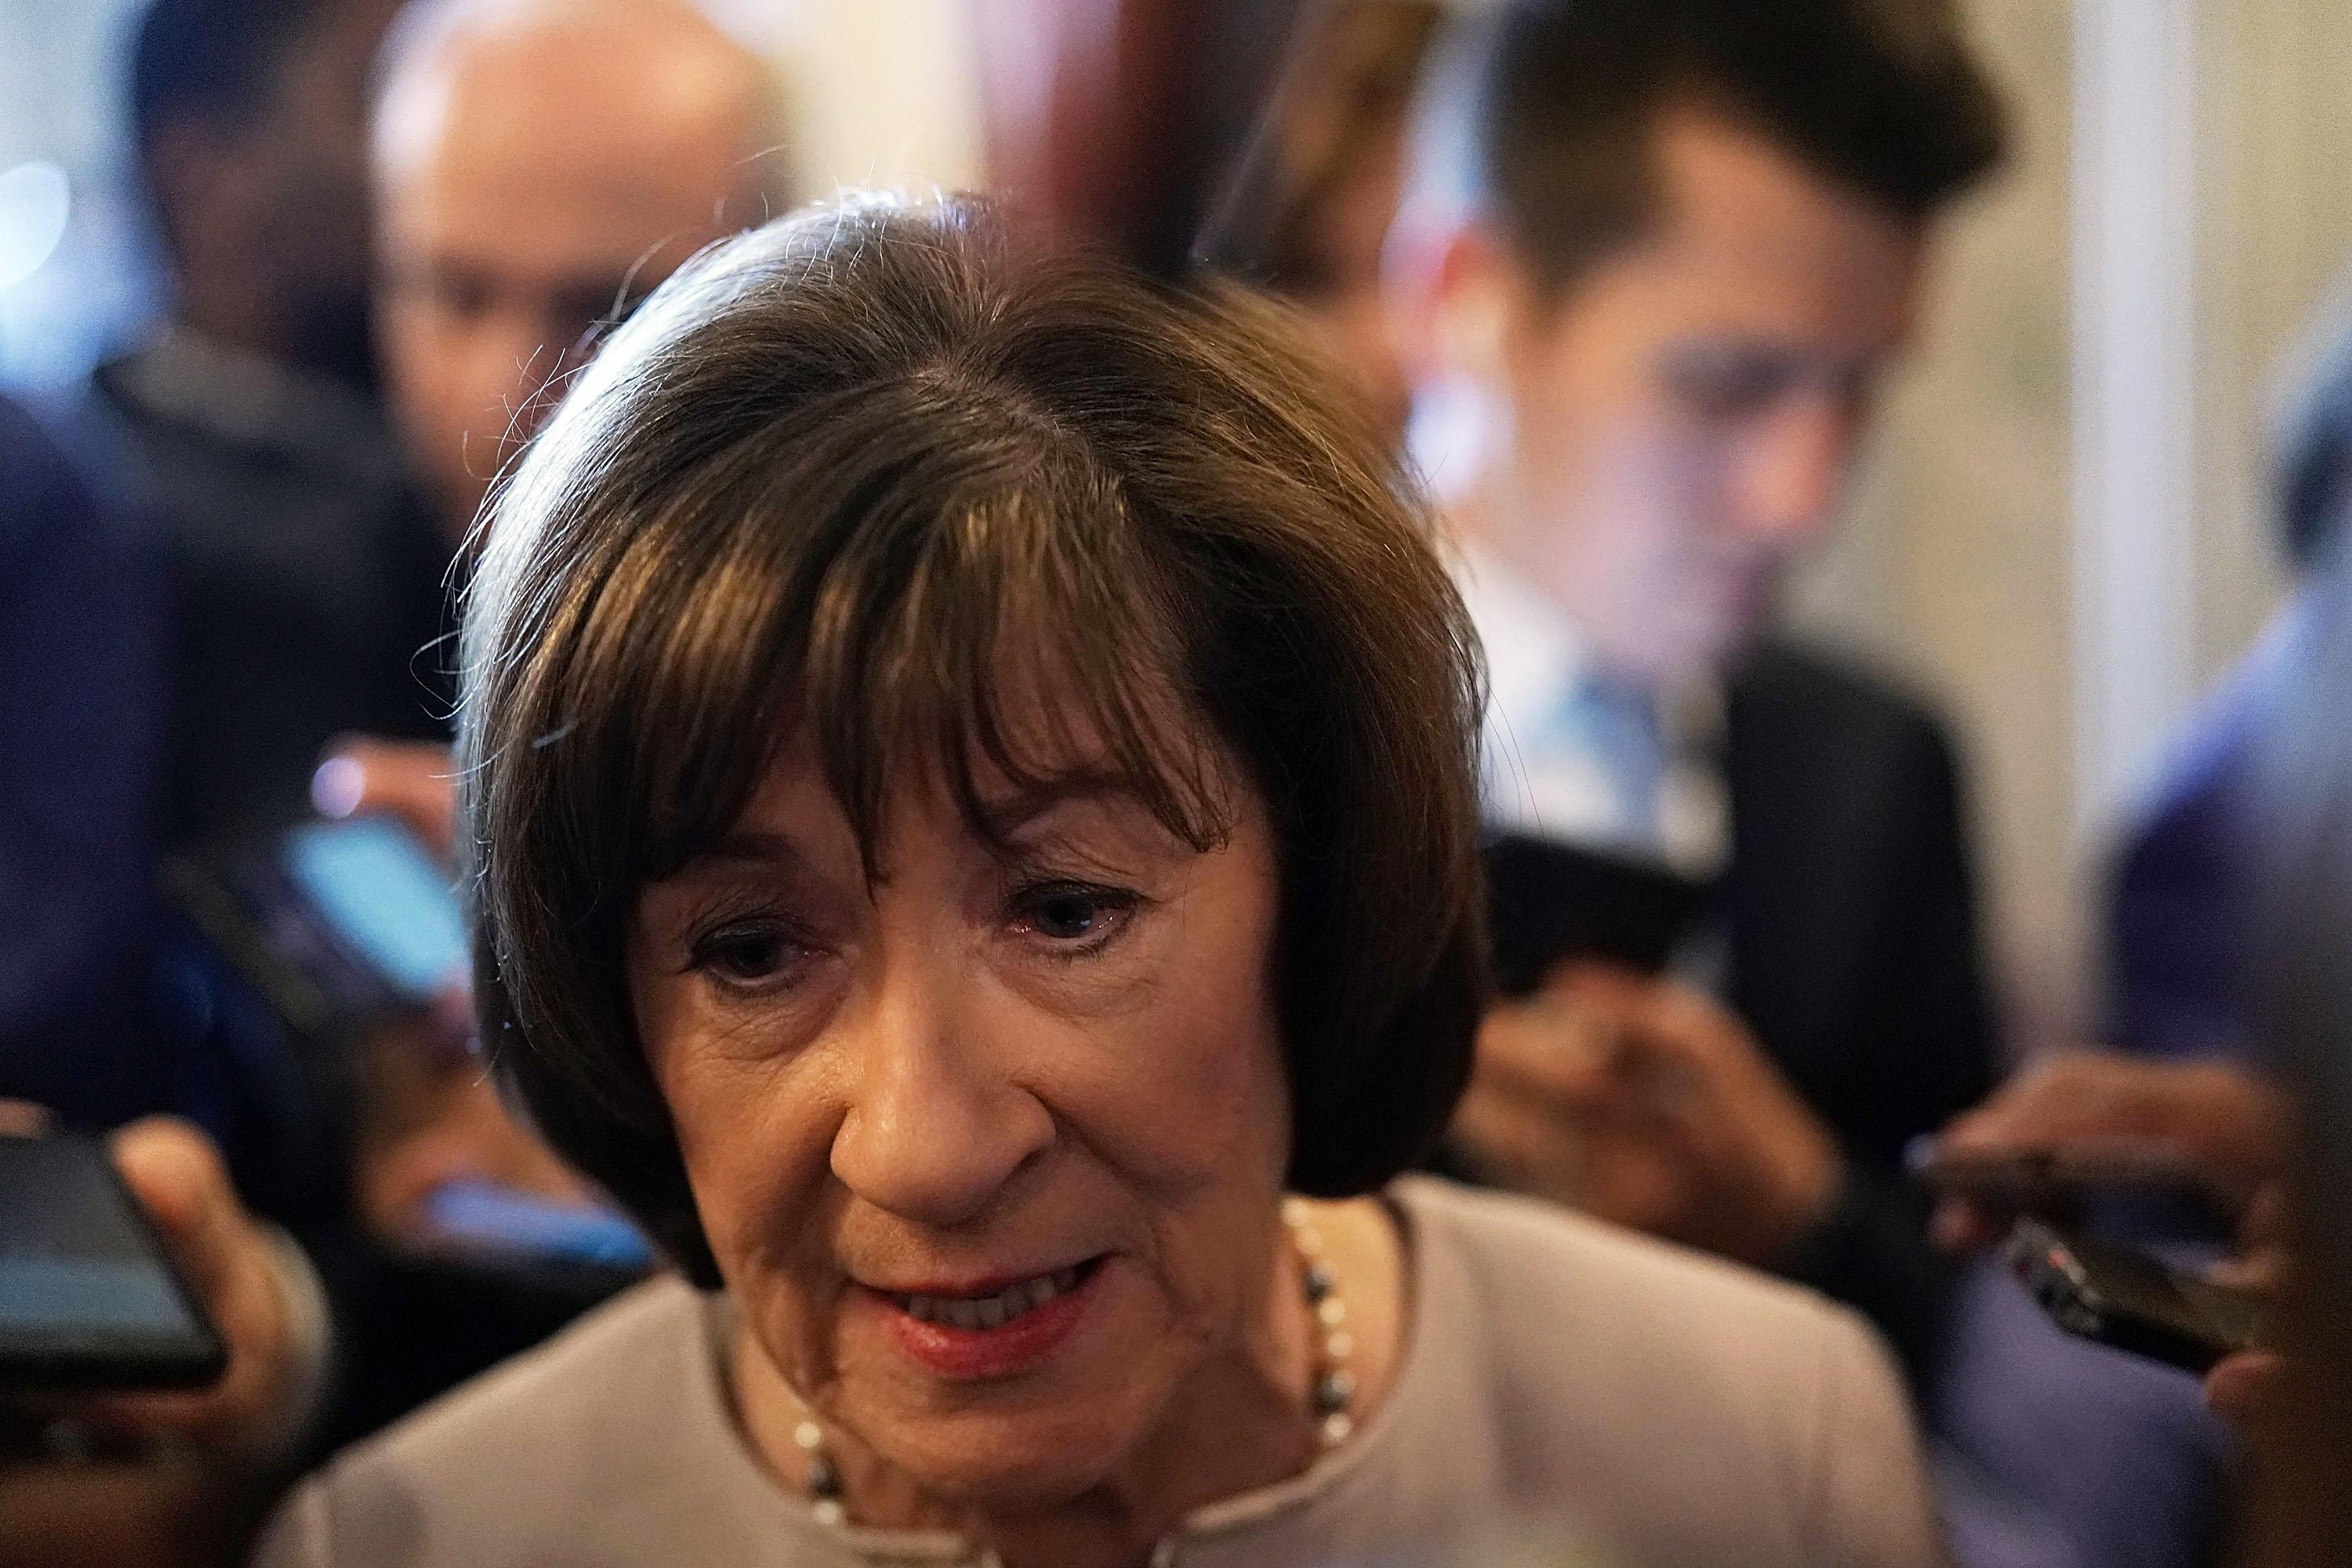 U.S. Sen. Susan Collins speaks to reporters after a floor speech to announce that she will vote for the nomination of Supreme Court Judge Brett Kavanaugh on October 5, 2018 in Washington, DC.